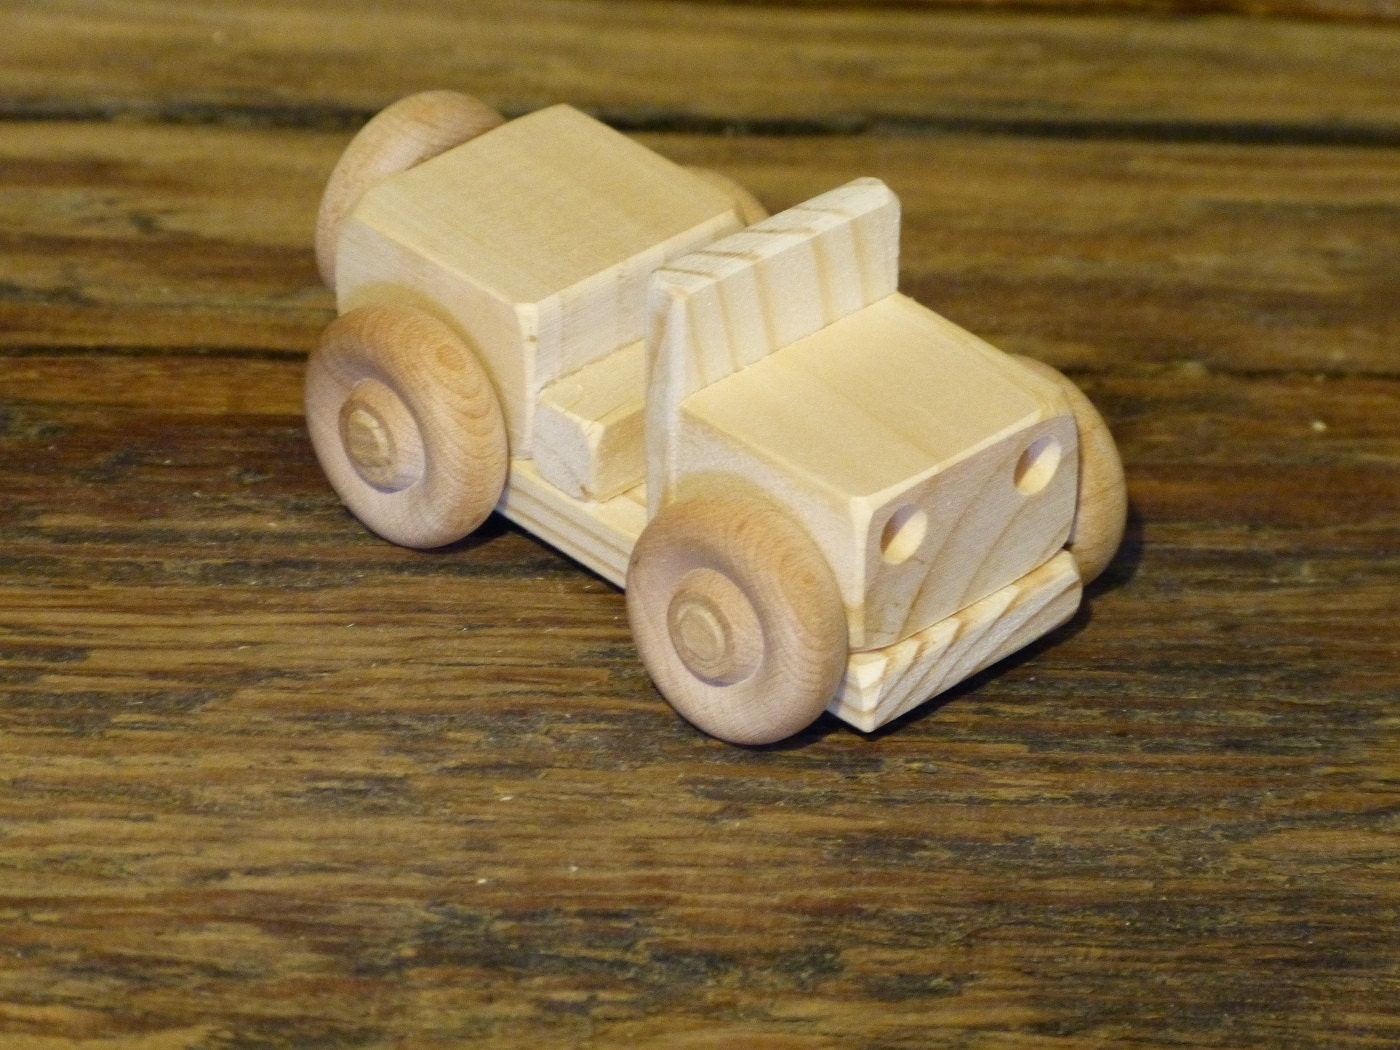 mini wood toy truck jeep wooden toys ww2 handmade kids boys childs birthday  gift present